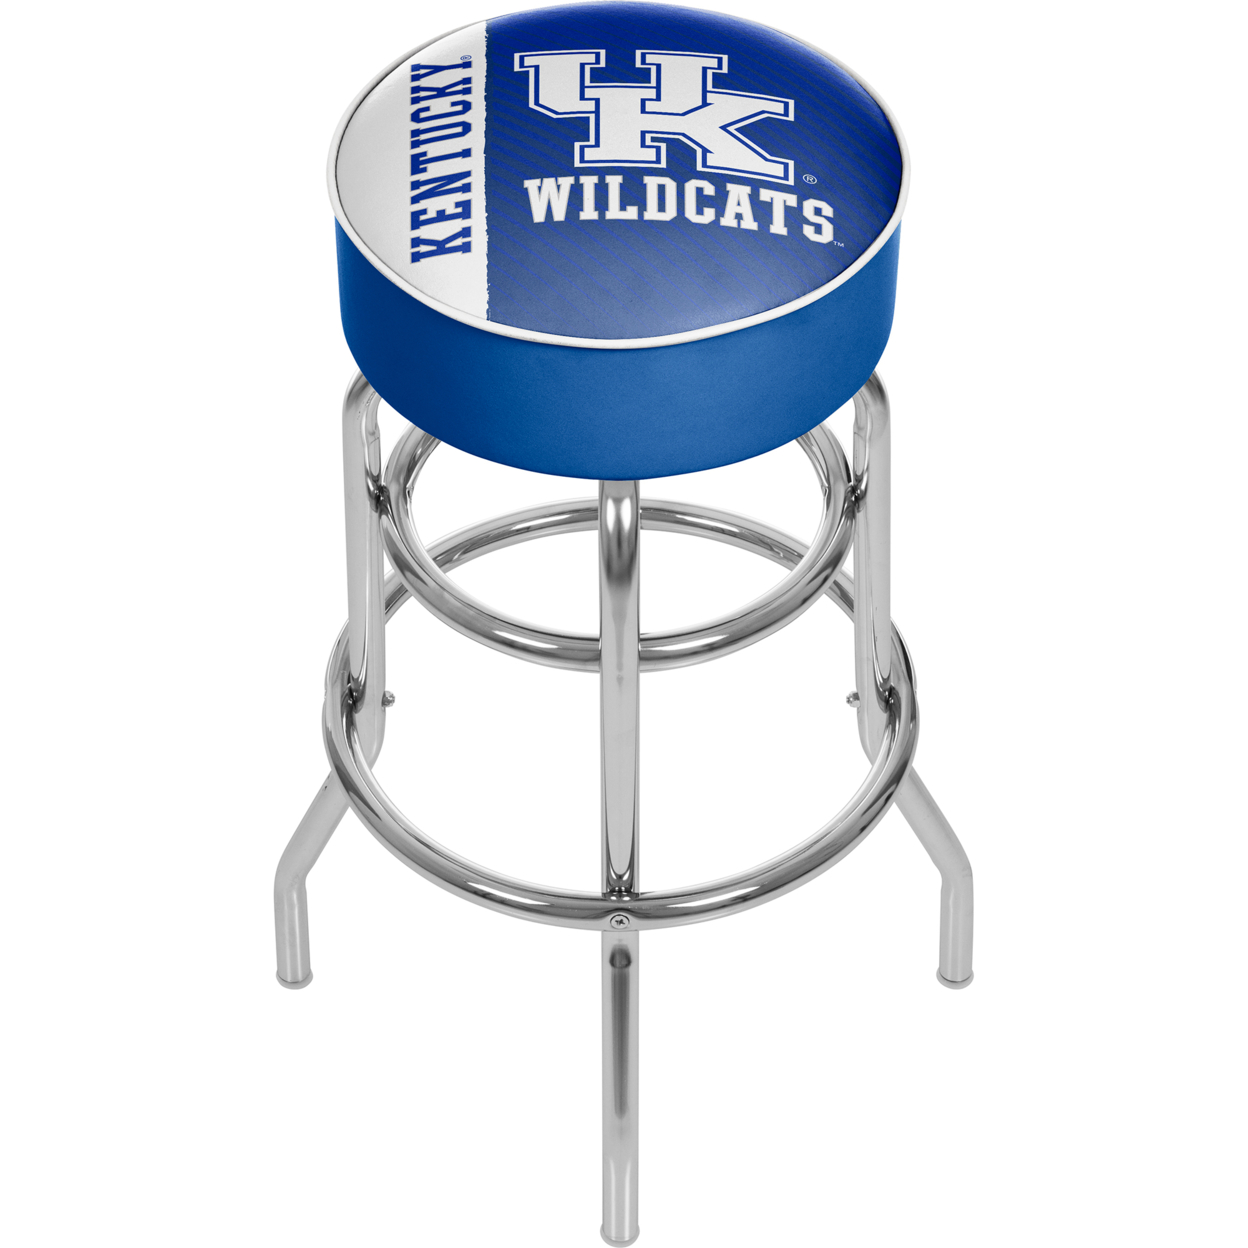 University of Kentucky Text Padded Swivel Bar Stool 30 Inches High